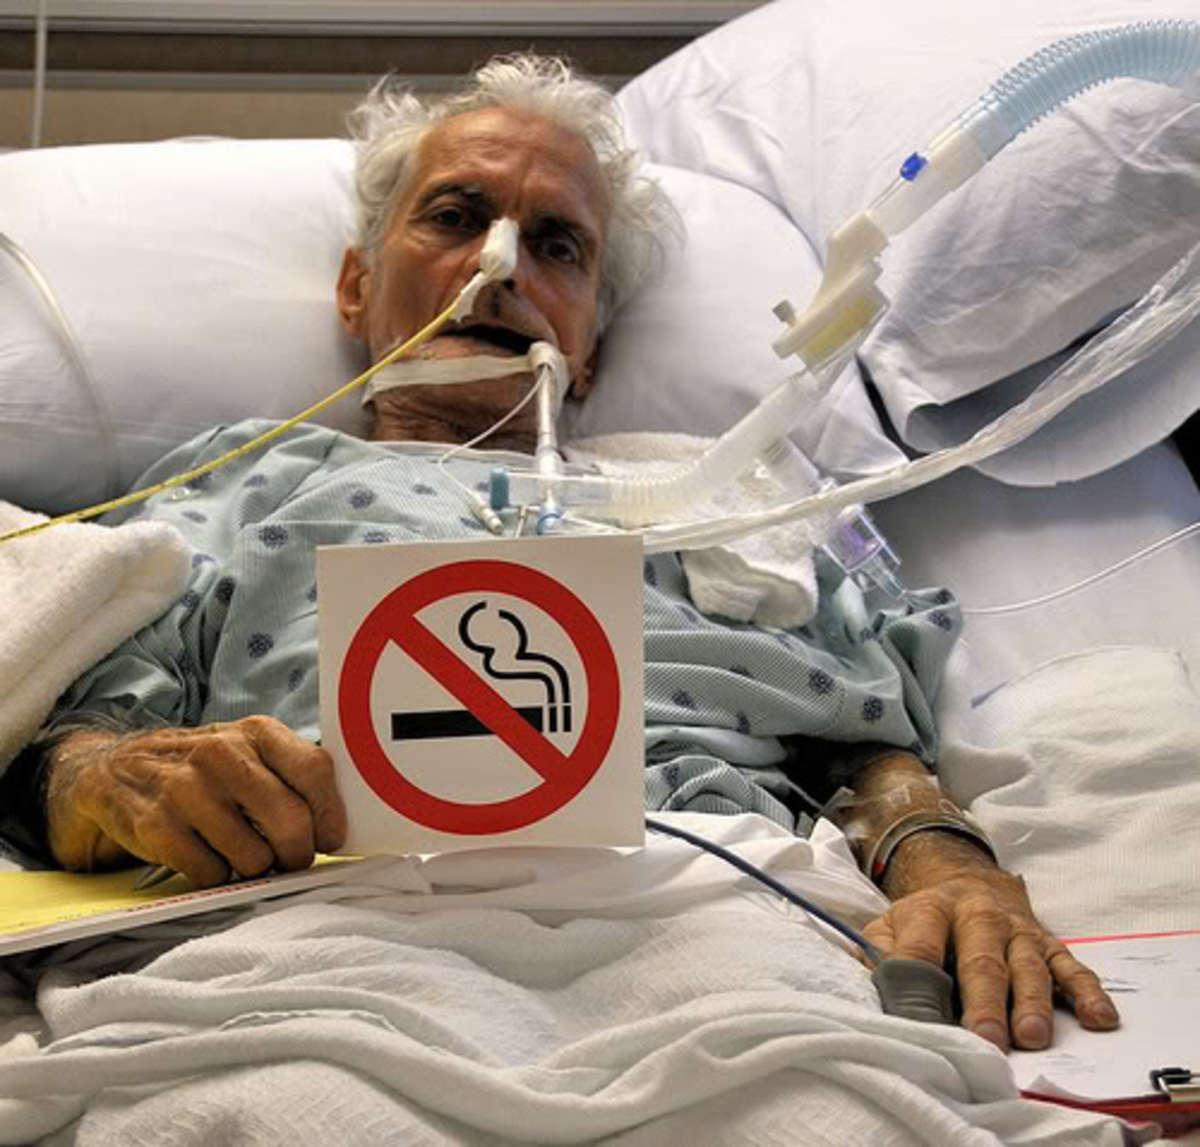 This was the caption that went with this picture:   Last Request; Please Don't Smoke My father asked me to take this picture of him after he regained consciousness in CCU. He lost the fight with lung disease. (Asbestosis, COPD, and Pnuemonia)